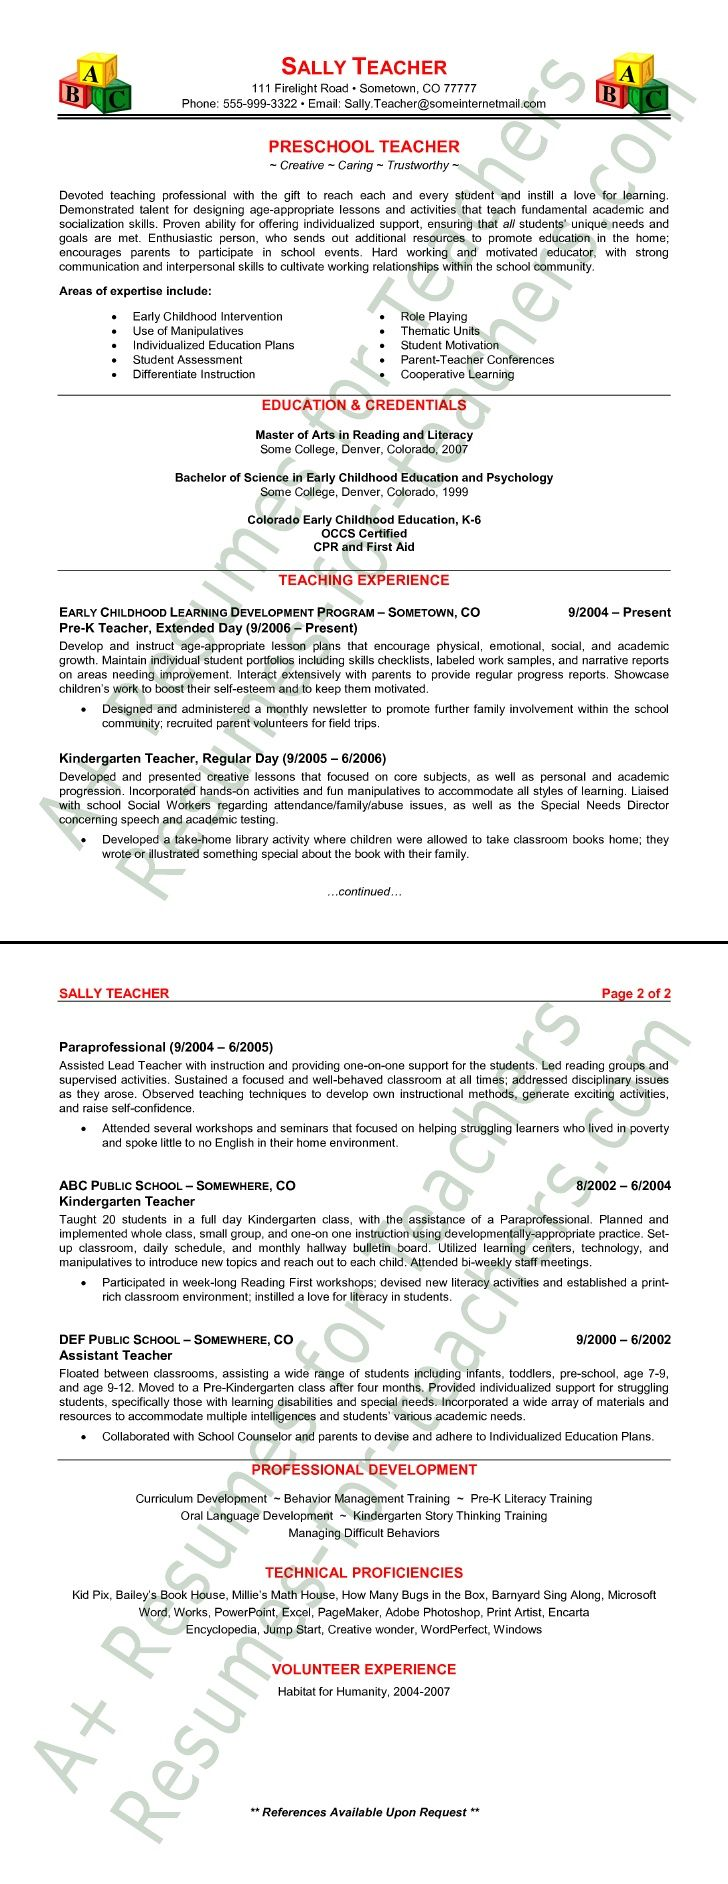 Sample Teaching Resumes For Preschool | Preschool Teacher Resume Sample